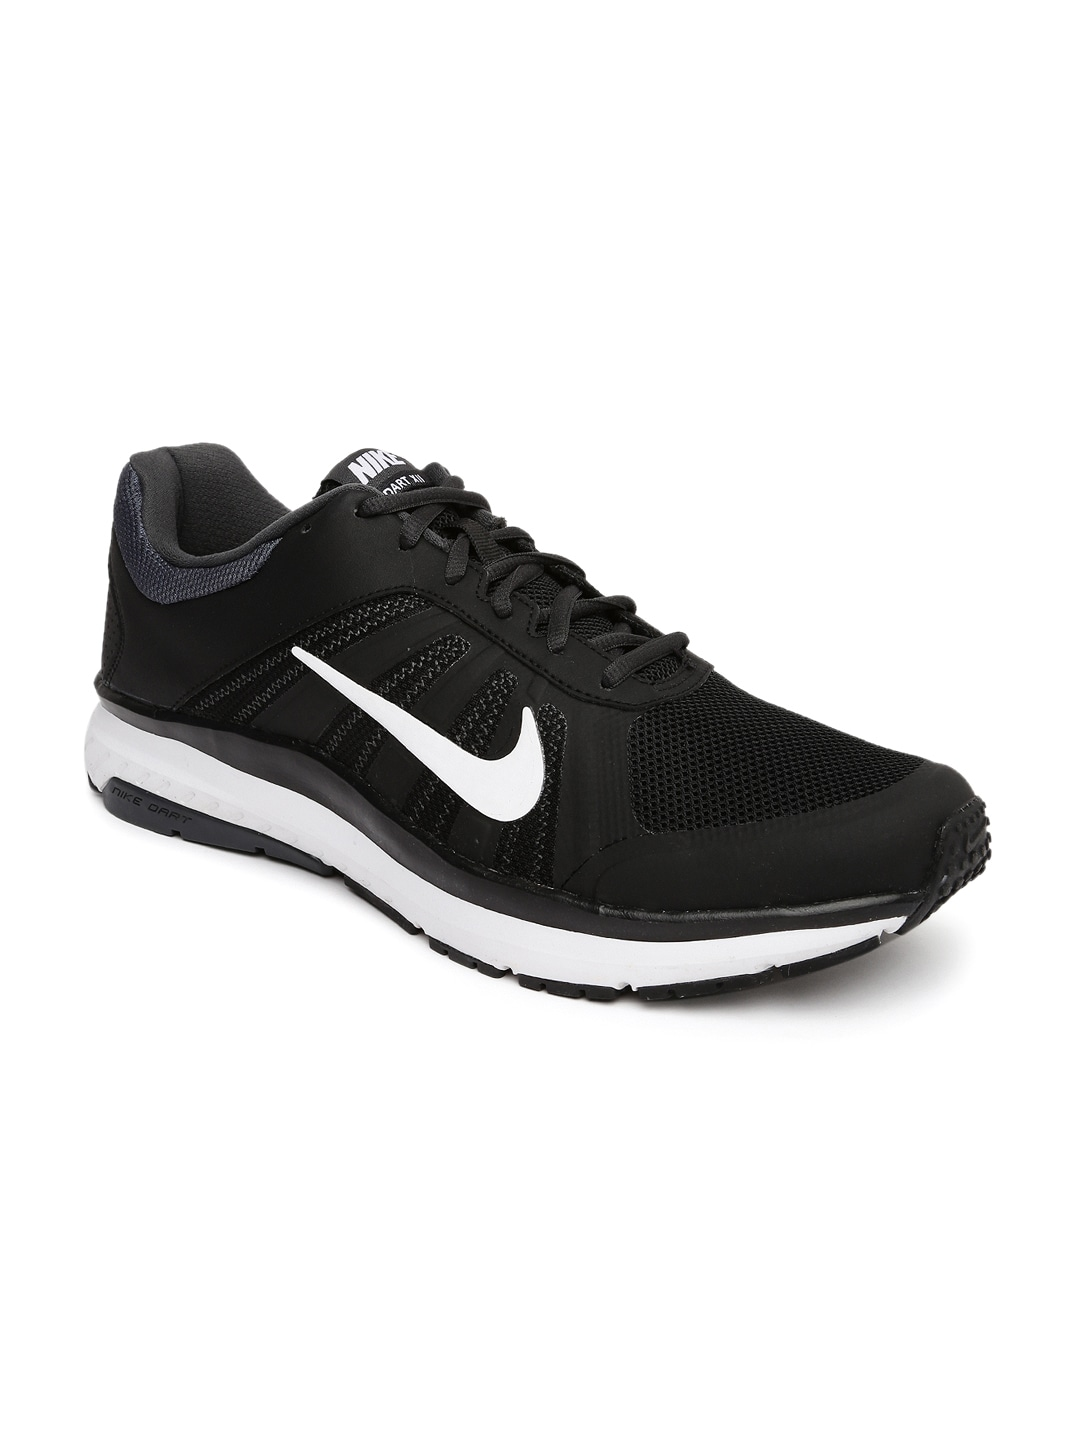 81005024a34 Nike Shoes - Buy Nike Shoes for Men